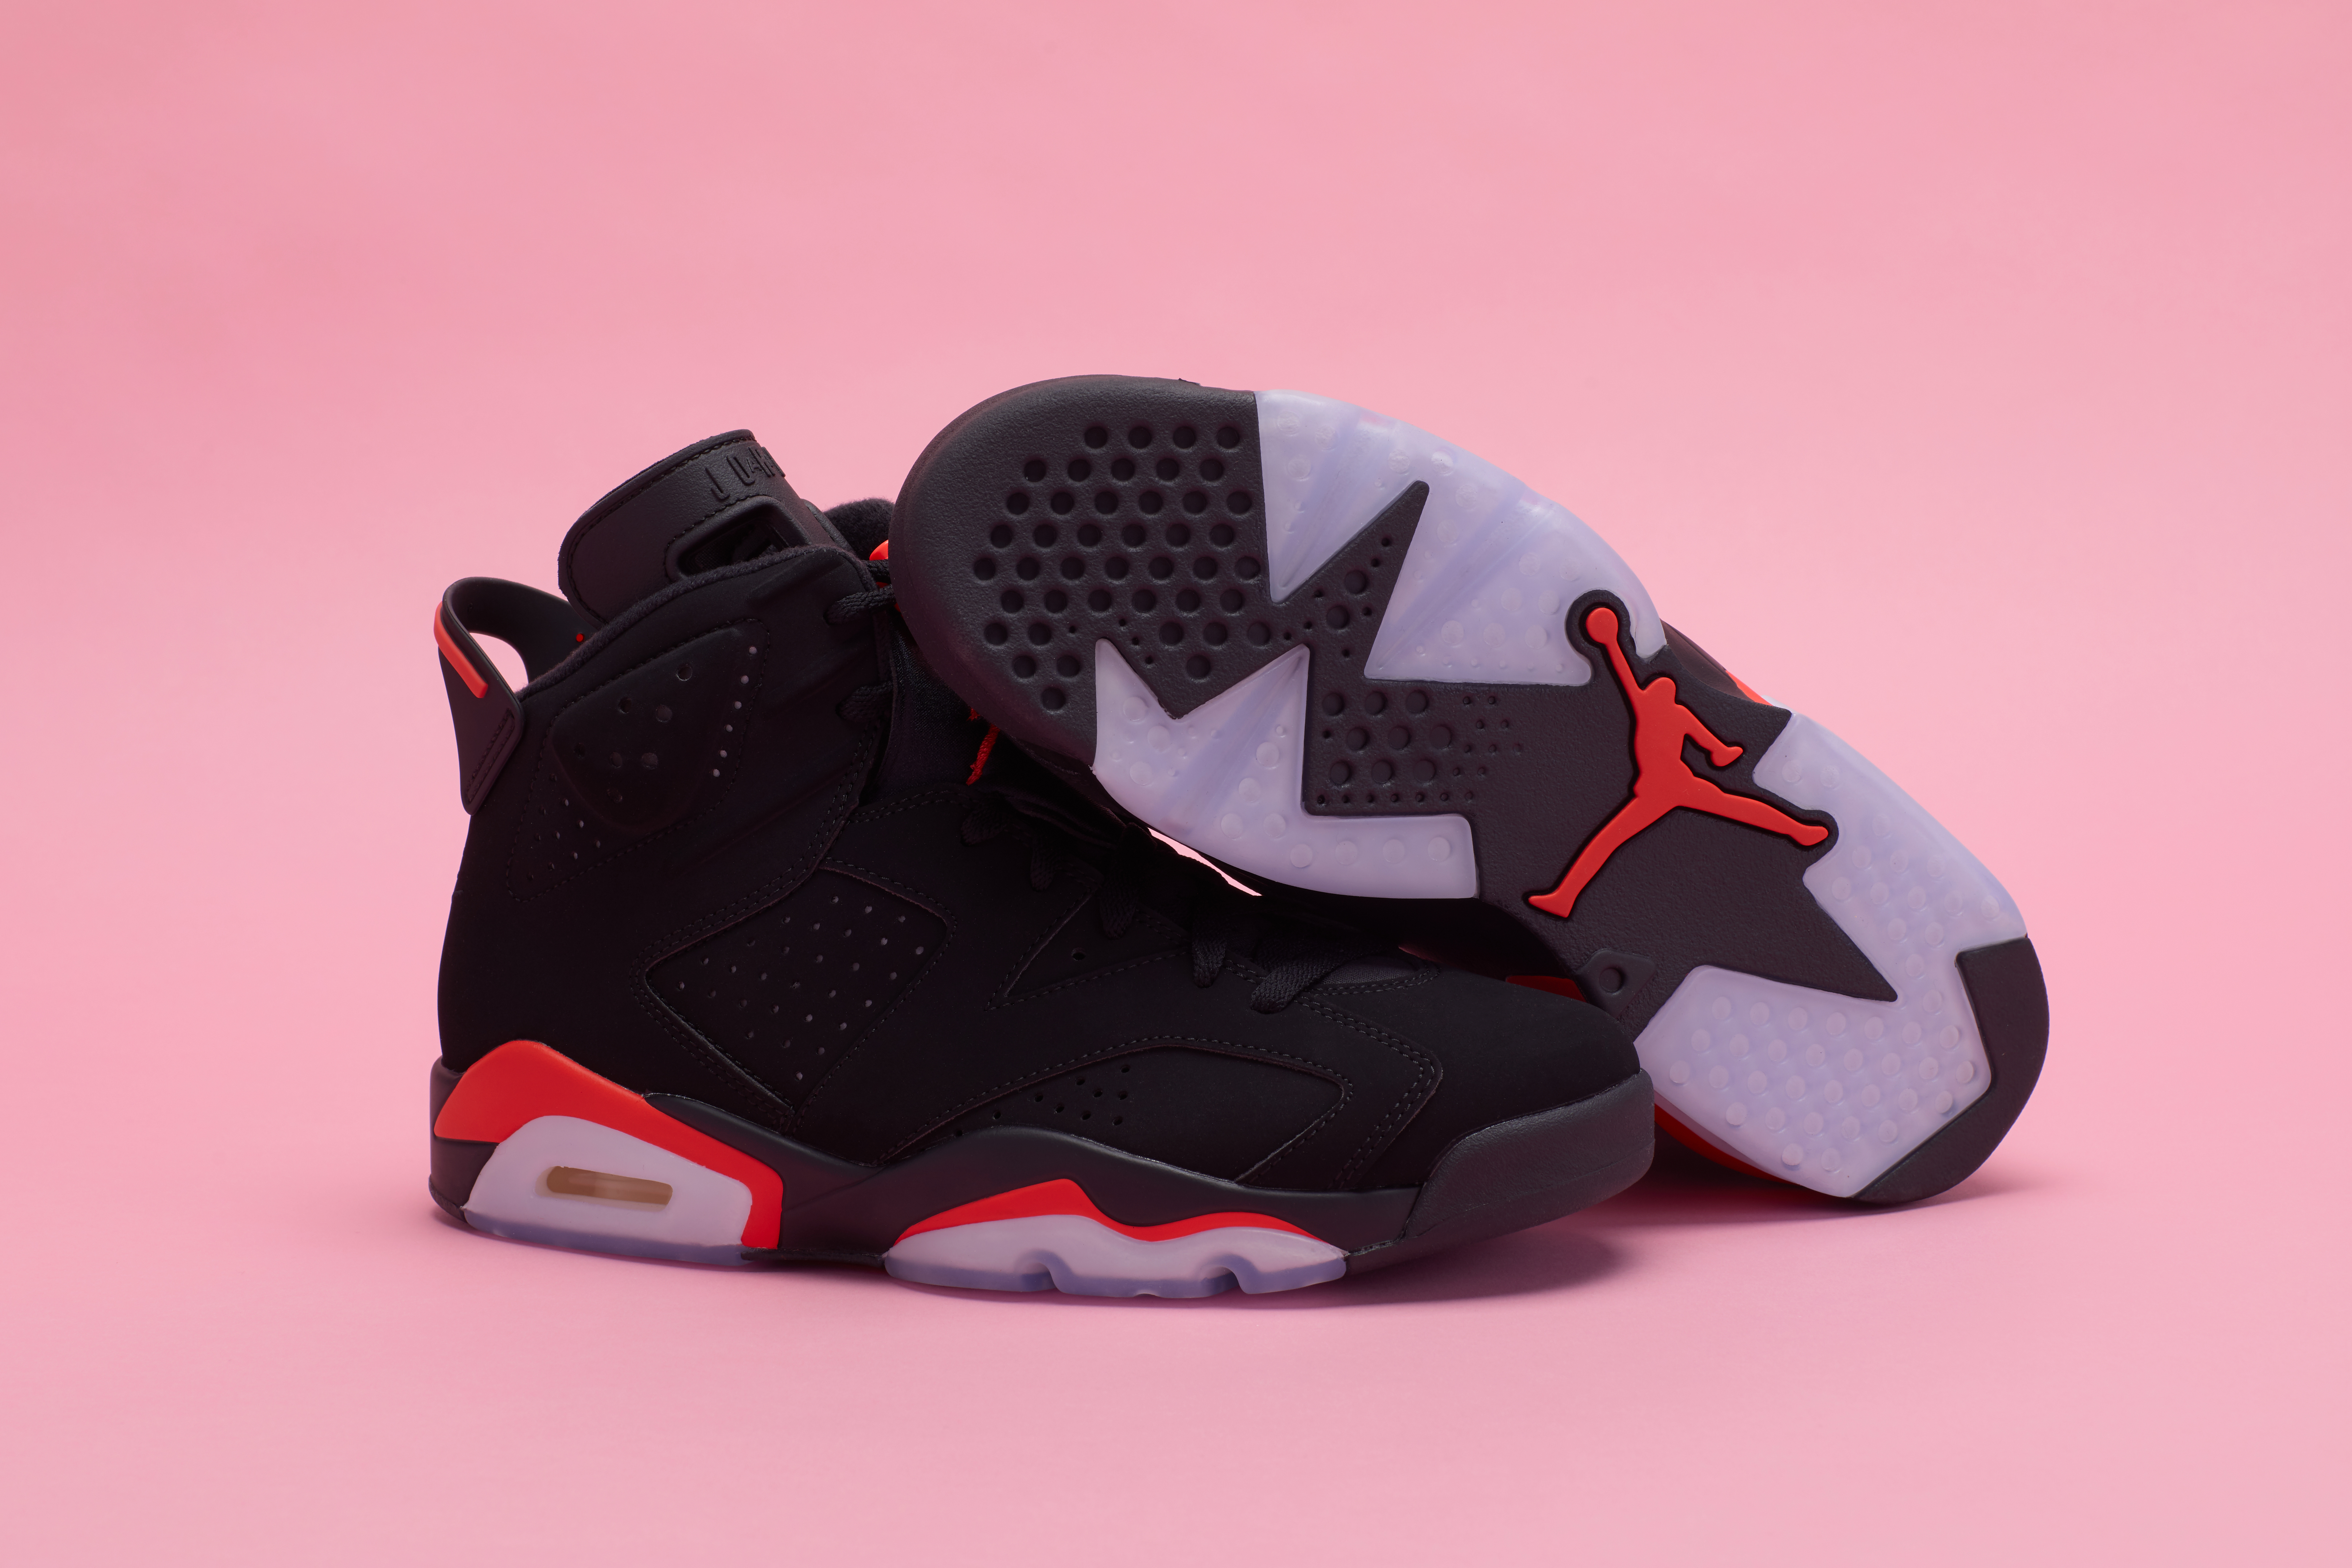 bf1f6d378ab Jordan 6 Black Infrared - By The Numbers - StockX News